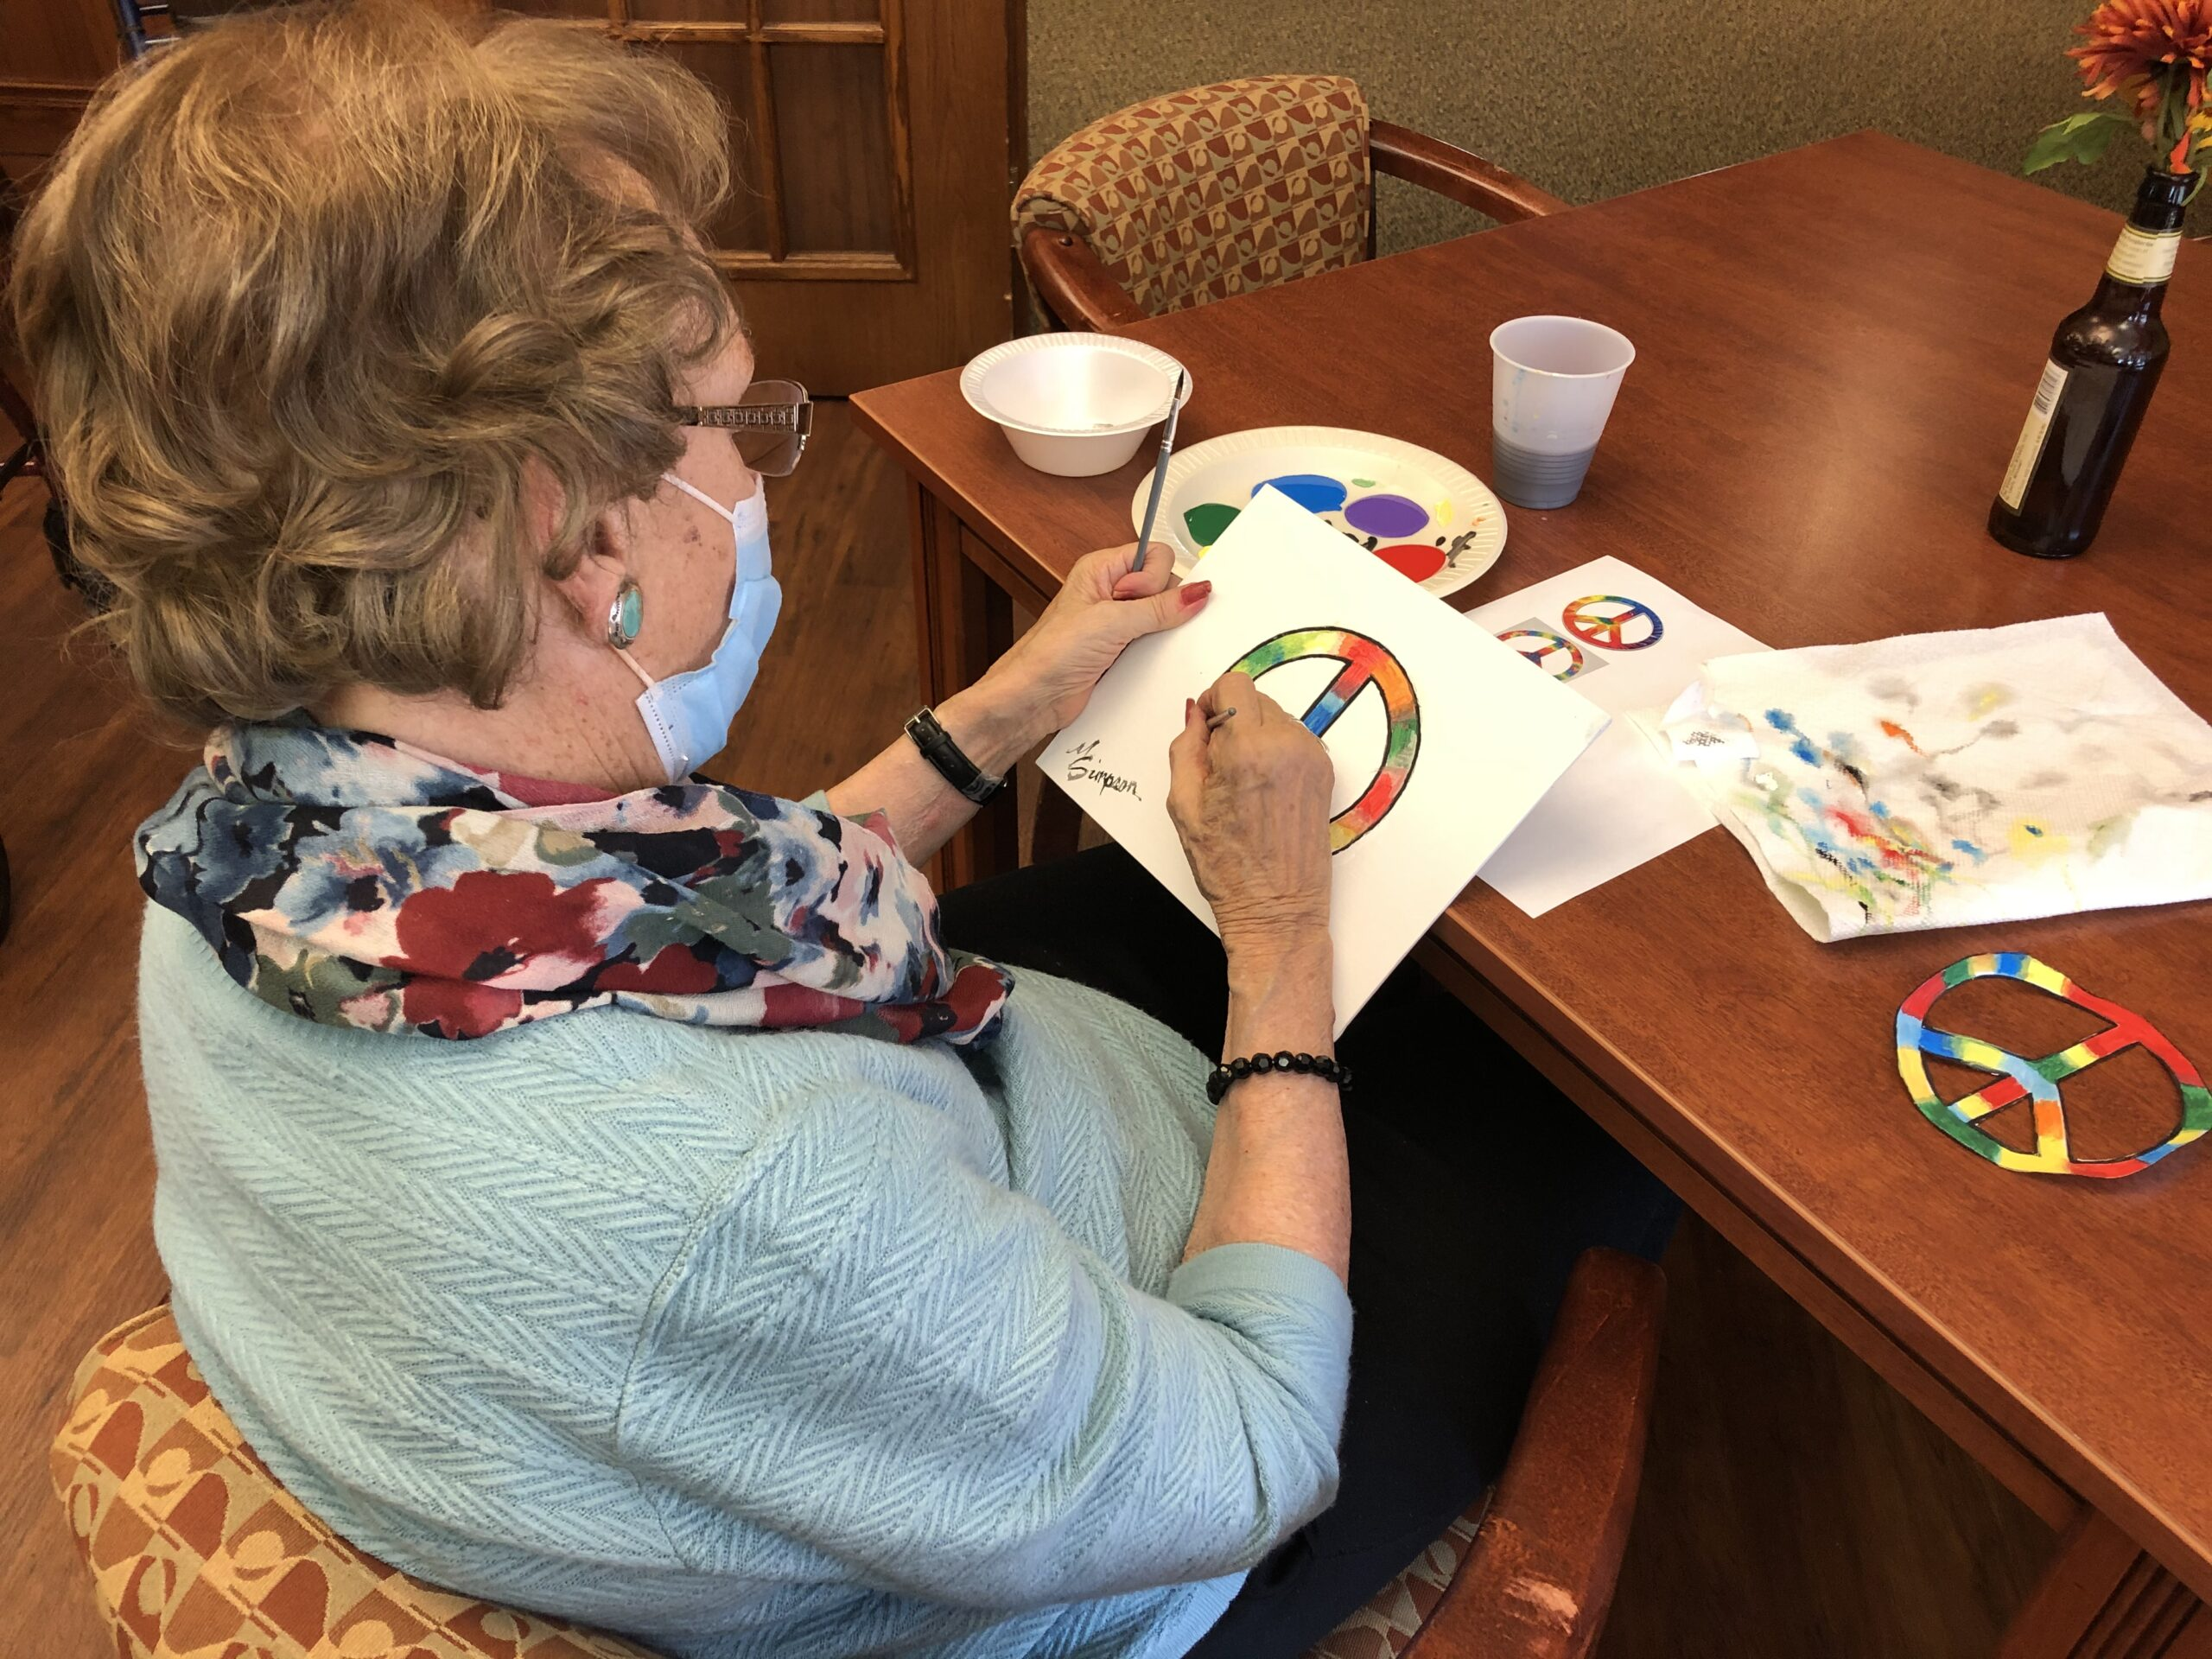 Our professional artist Marian celebrated John Lennons birthday by painting a Peace Sign